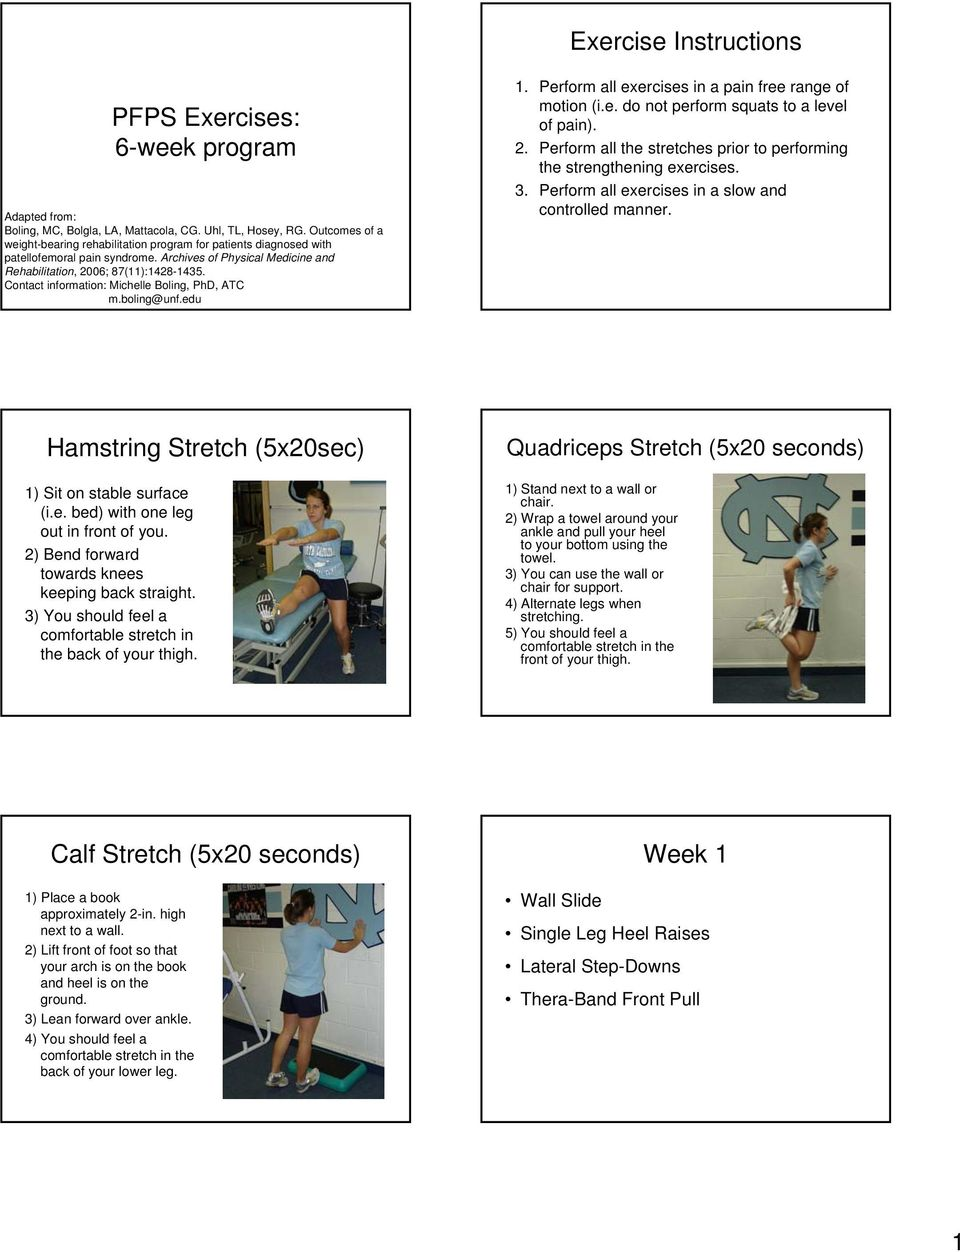 Exercise Instructions Pfps Exercises 6 Week Program Hamstring Stretch 5x20sec Week 1 Calf Stretch 5x20 Seconds Pdf Free Download